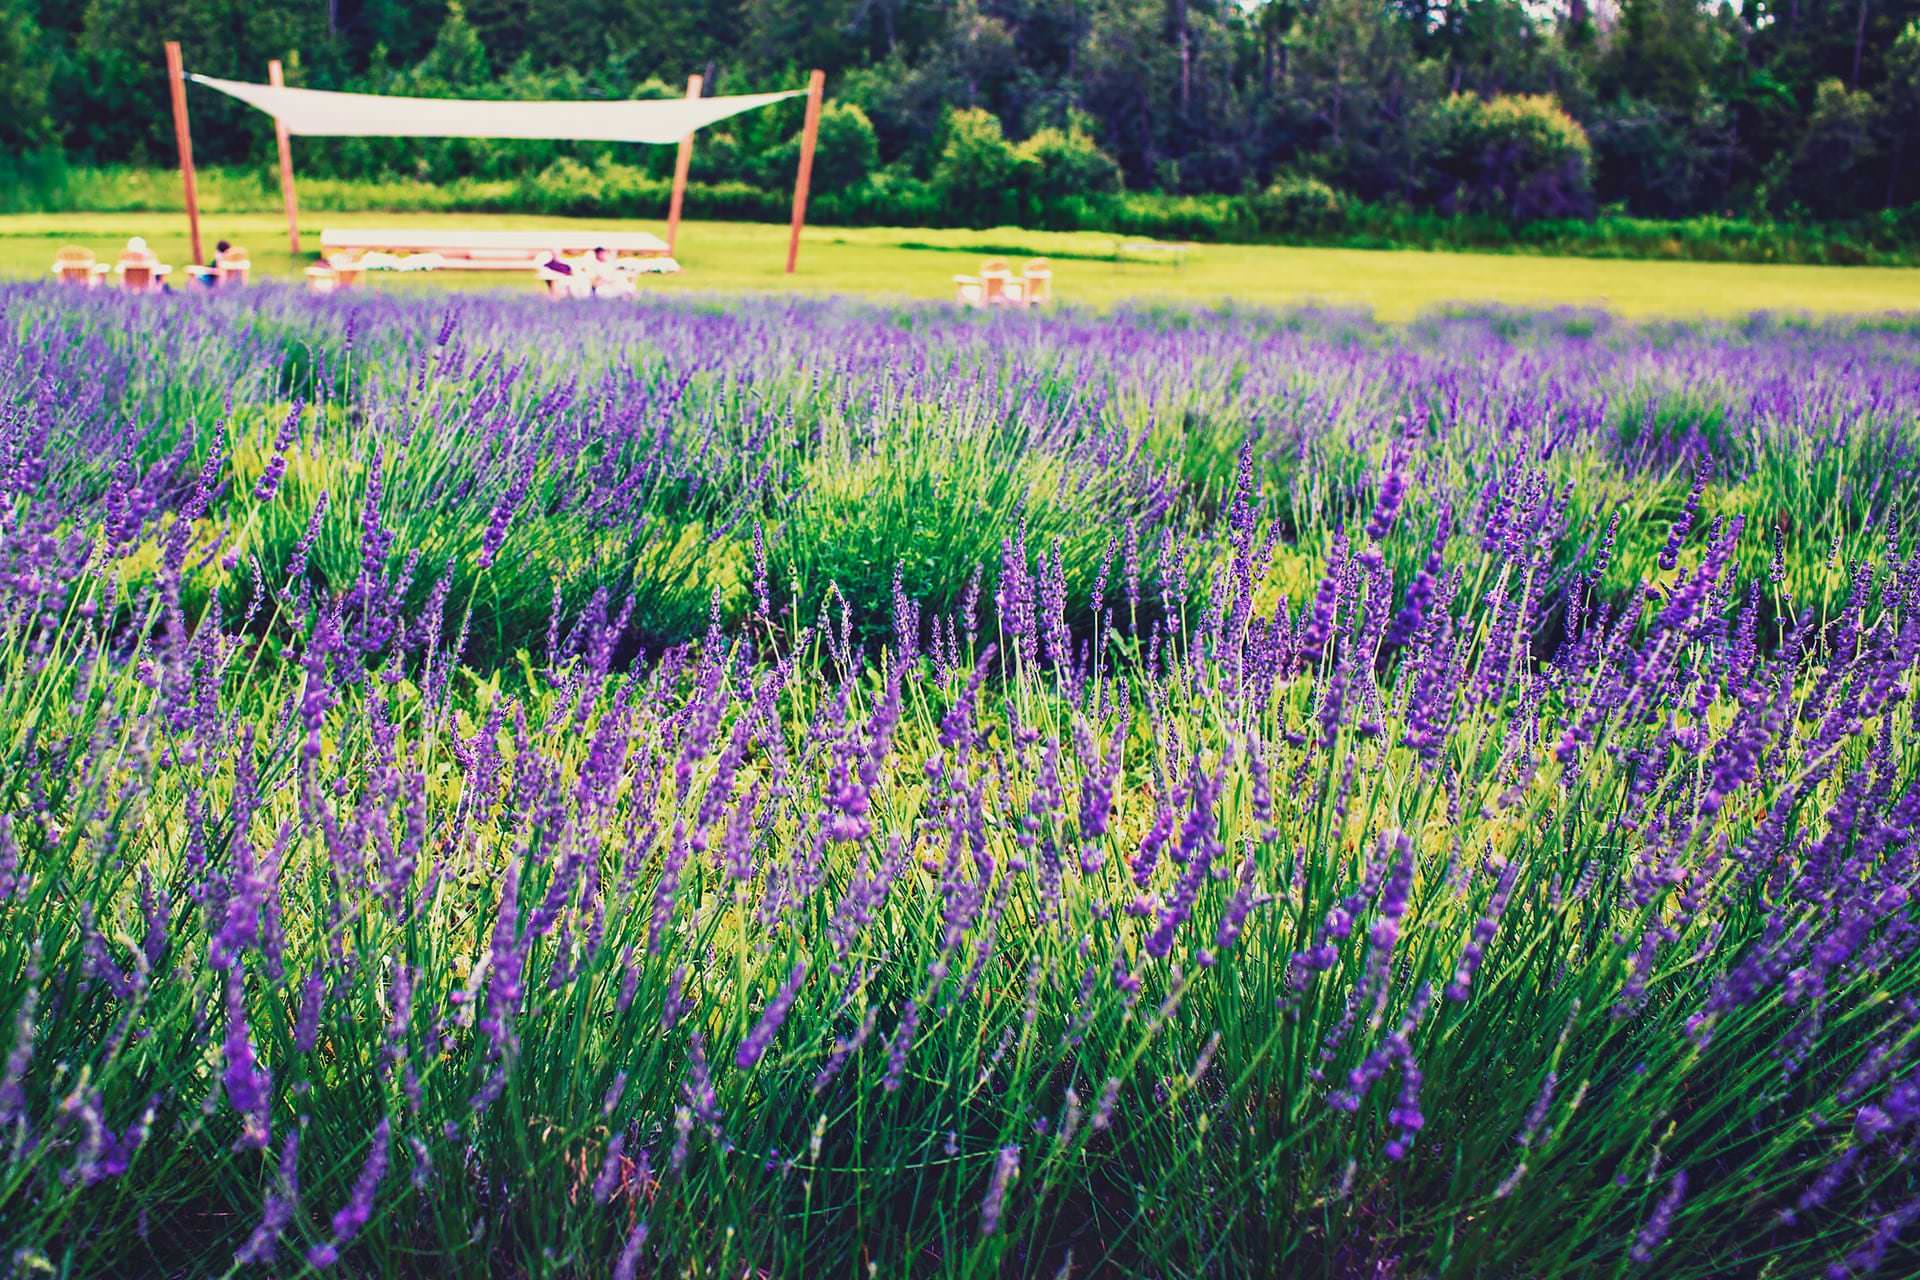 Rest area in front of fields of lavenders at Terre Bleu Lavender Farm